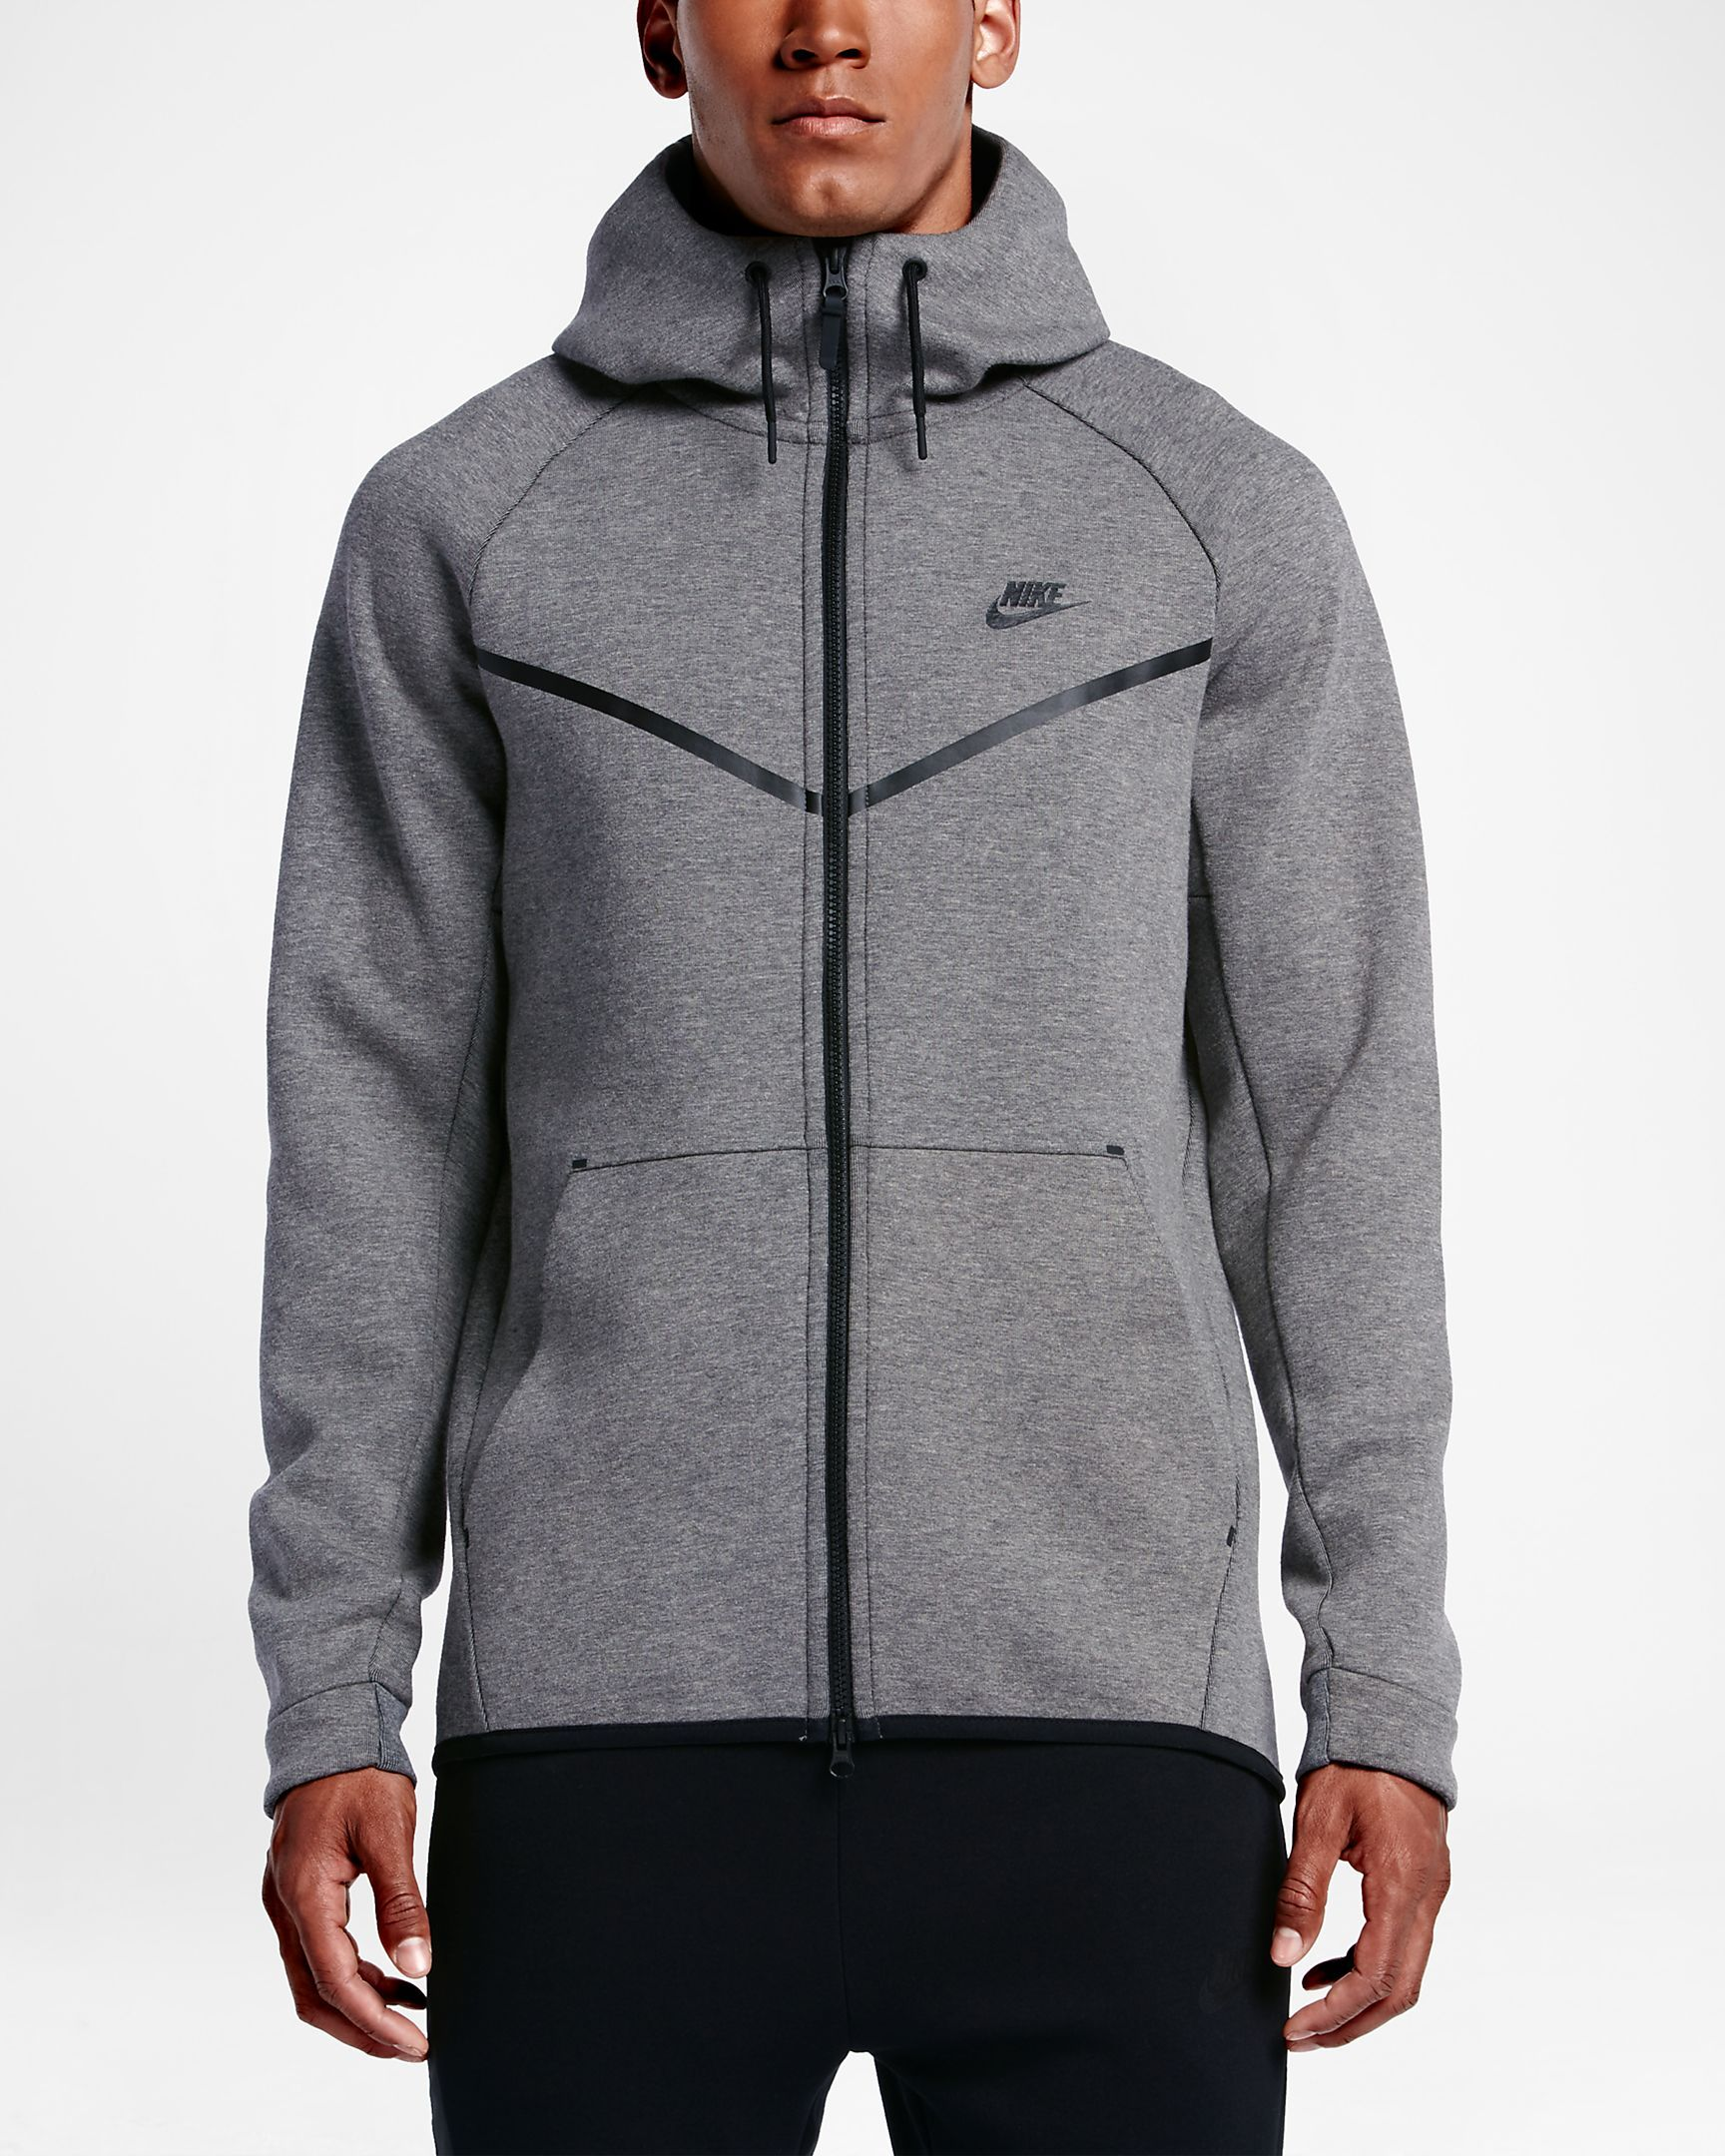 7c589500 Nike Sportswear Tech Fleece Windrunner Men's Full-Zip Hoodie | bo ...